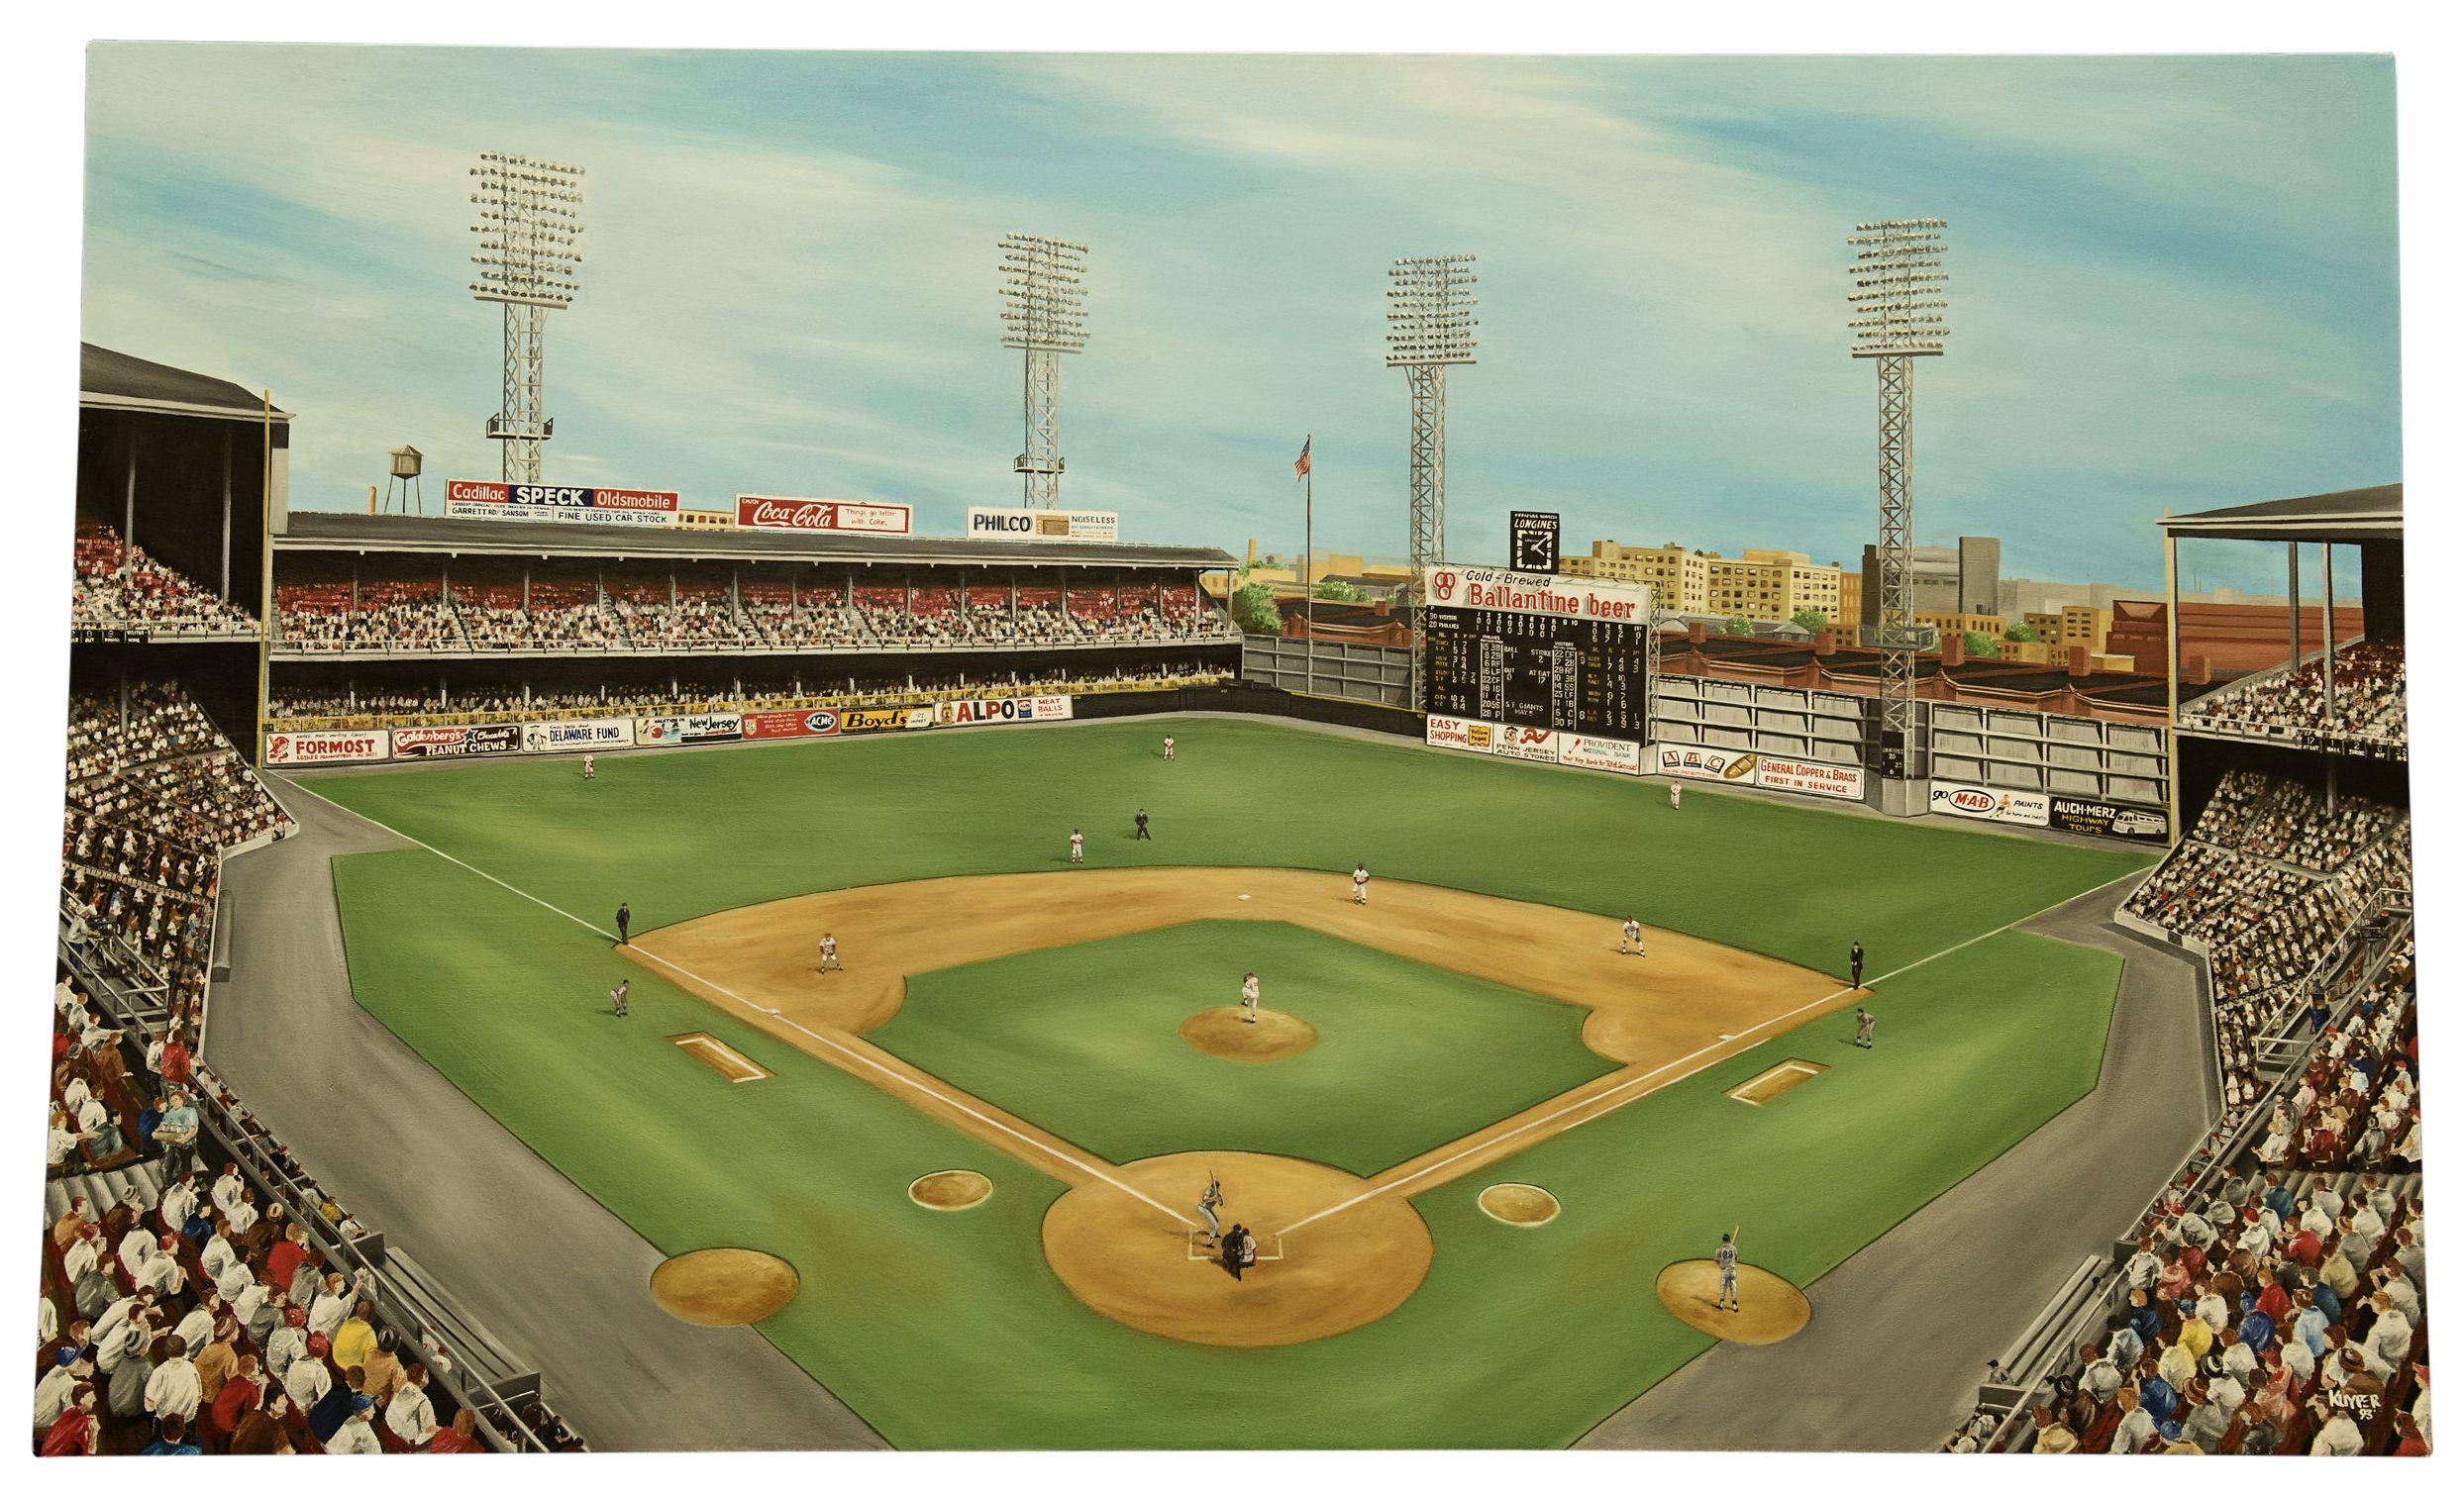 Lot Detail Connie Mack Stadium Mahaffey S 17 Strikeout Game 3x5 Ft Oil On Canvas Painting By Mike Kuyp Stadium Major League Baseball Stadiums Baseball Park